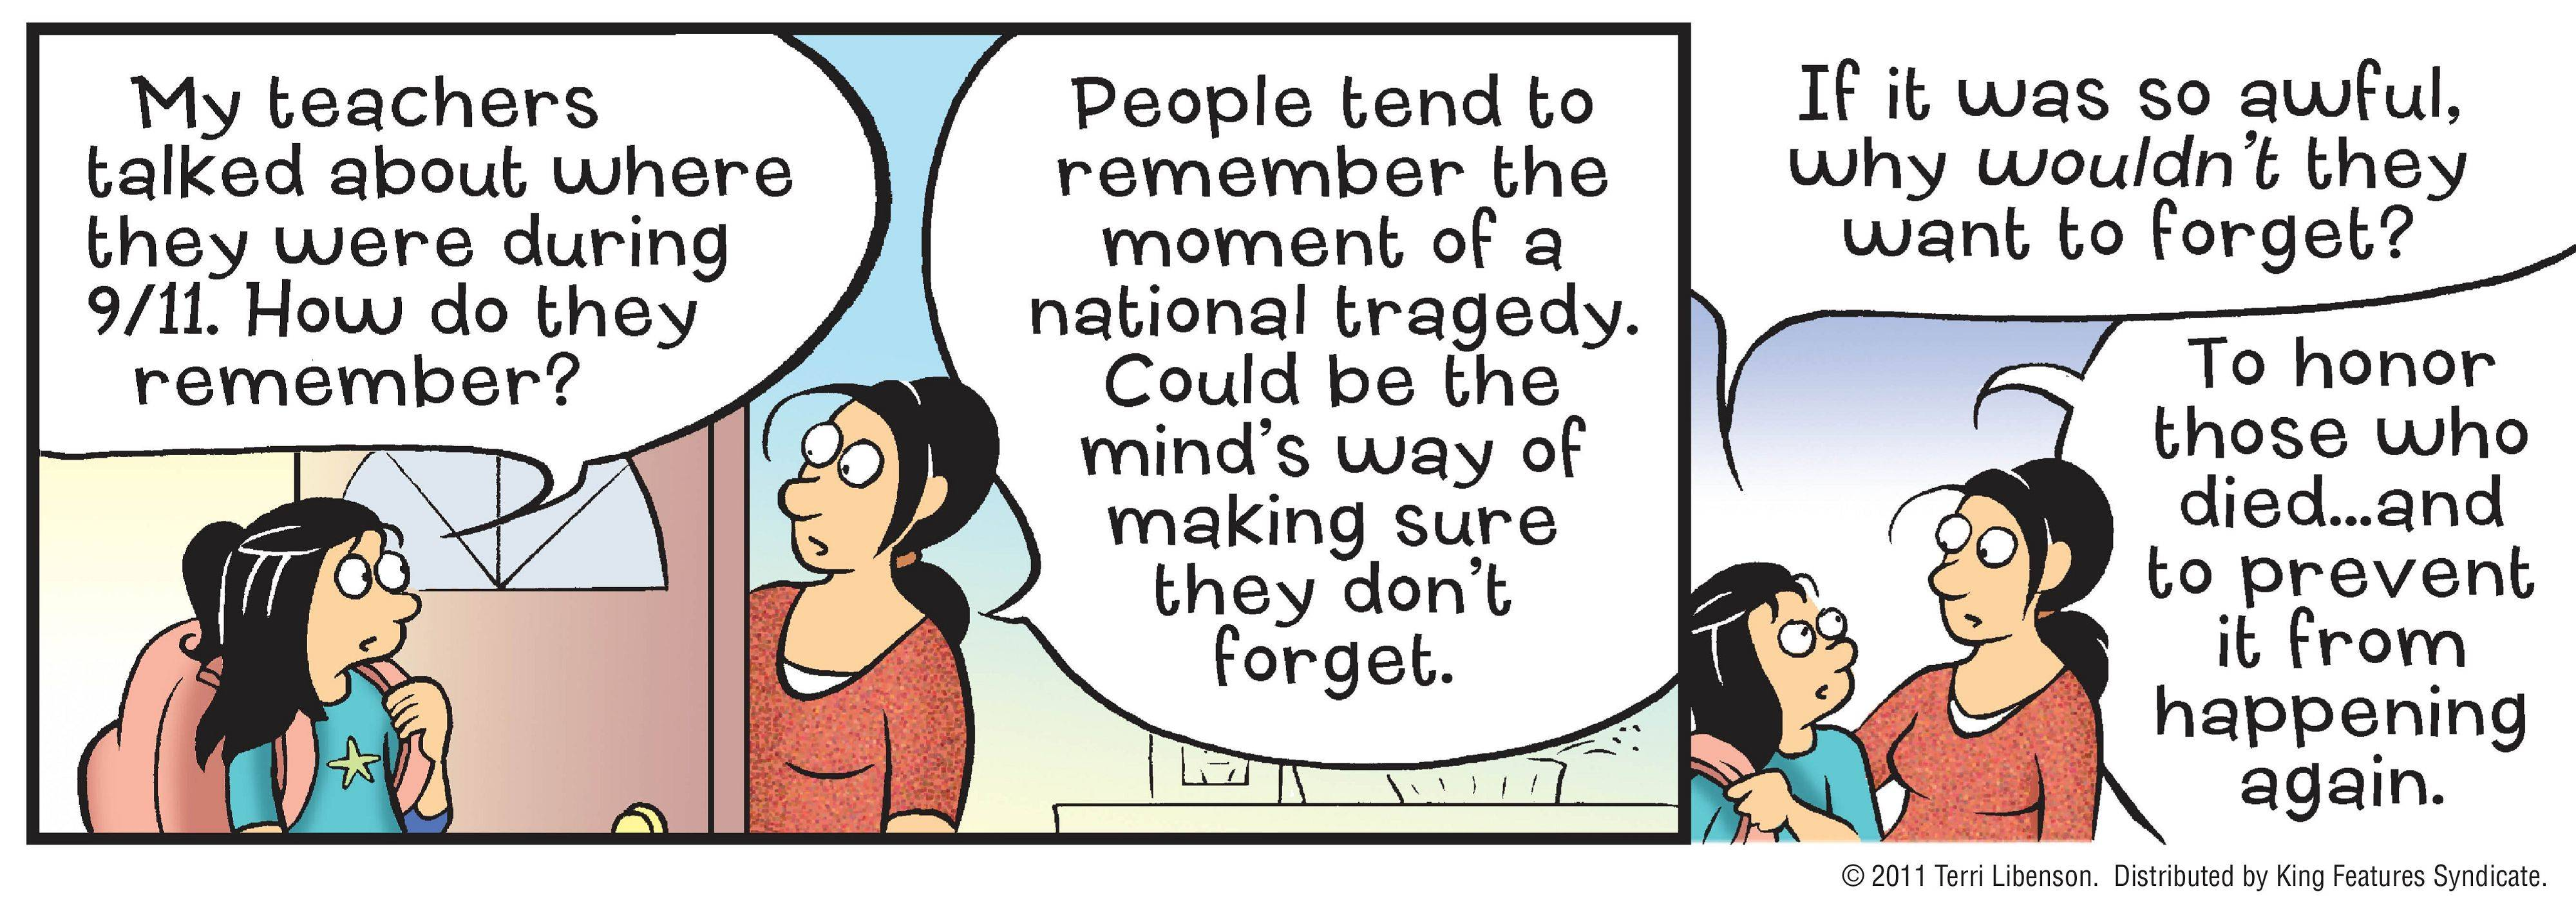 """Pajama Diaries"" will be one of the comic strips, which will be devoted to the 10th anniversary of the Sept. 11 terror attacks."